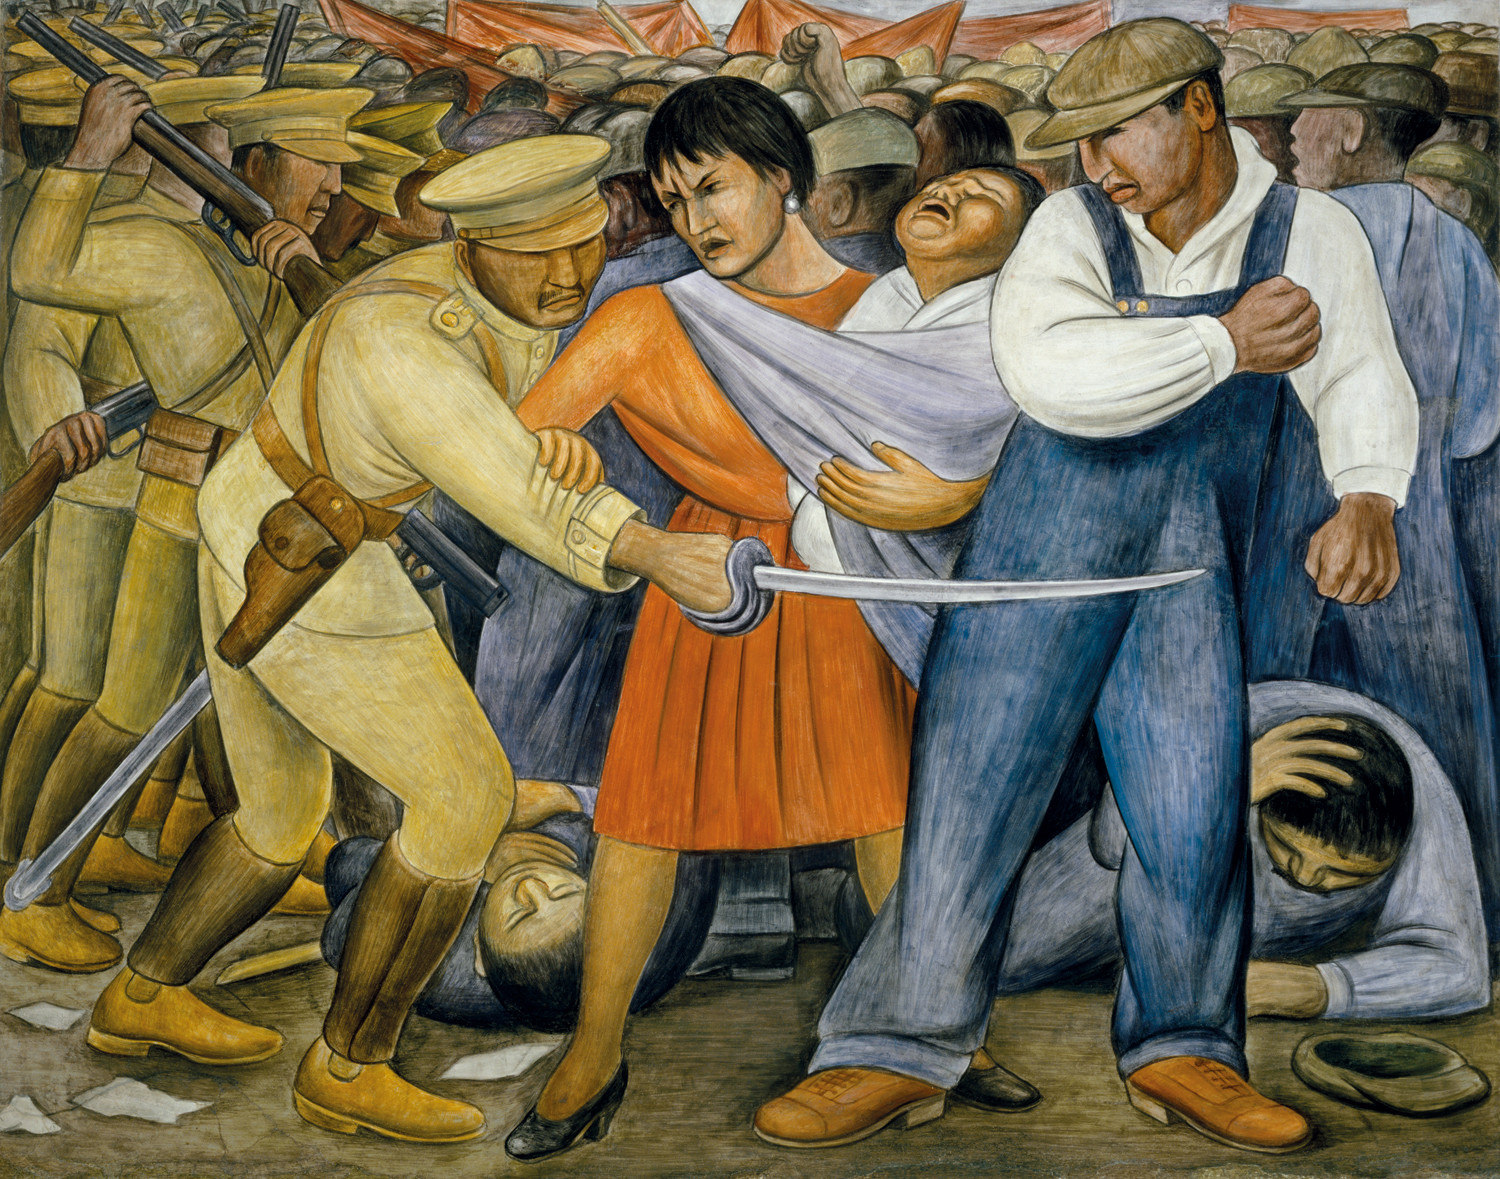 A Brief History of Protest Art